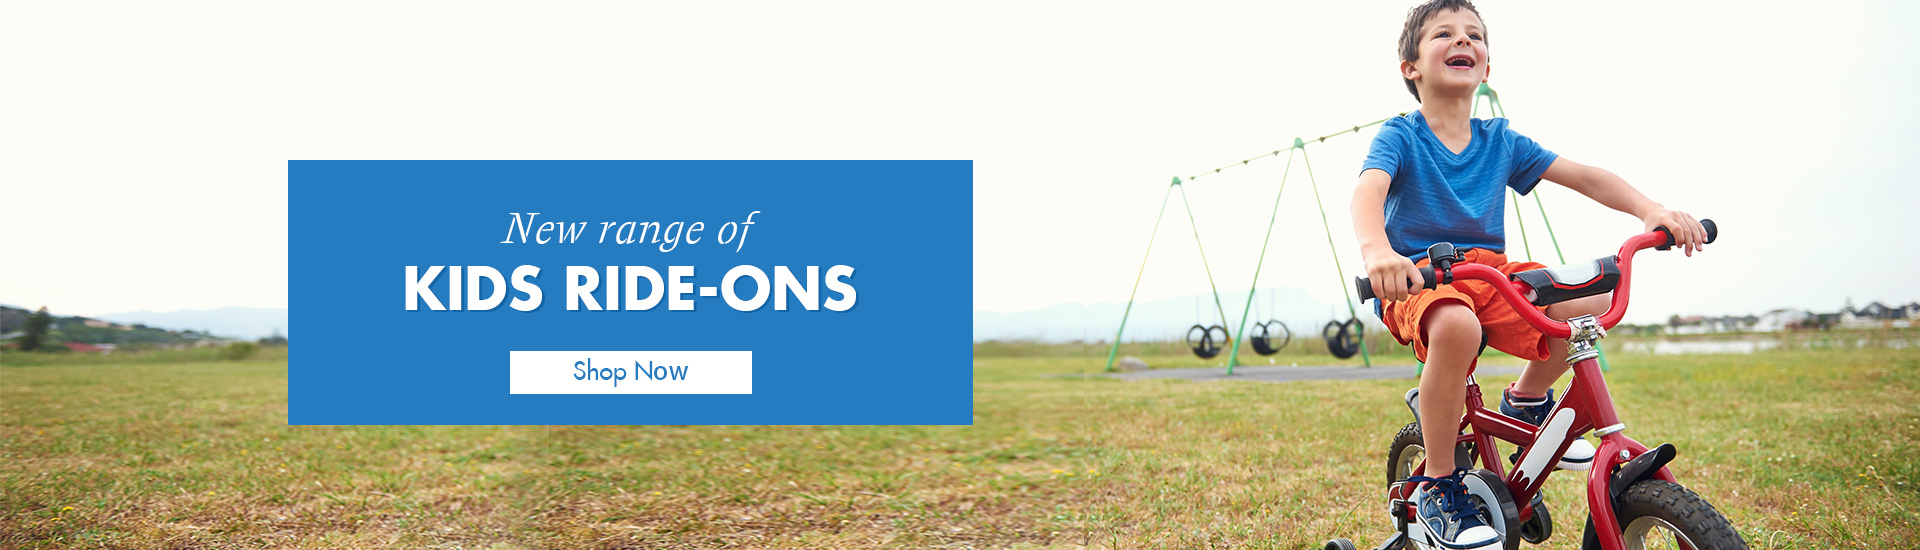 Kids ride-ons sale